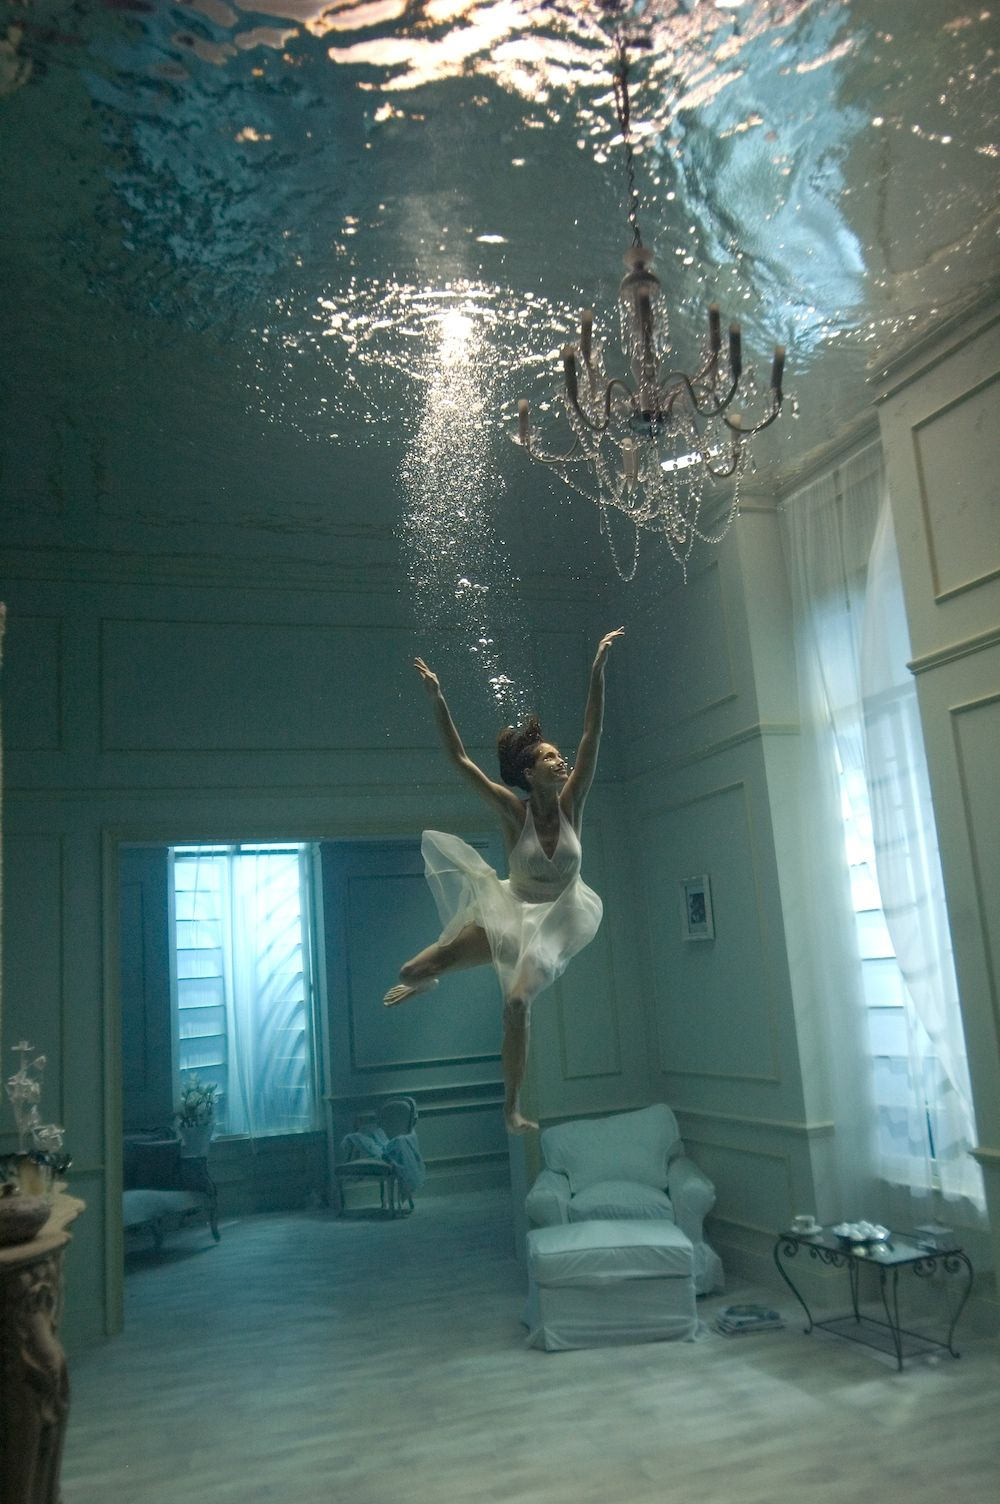 shakeupthesky-phoebe-rudomino-underwater-photography-to-a-new-extreme-1349613654_org.jpg